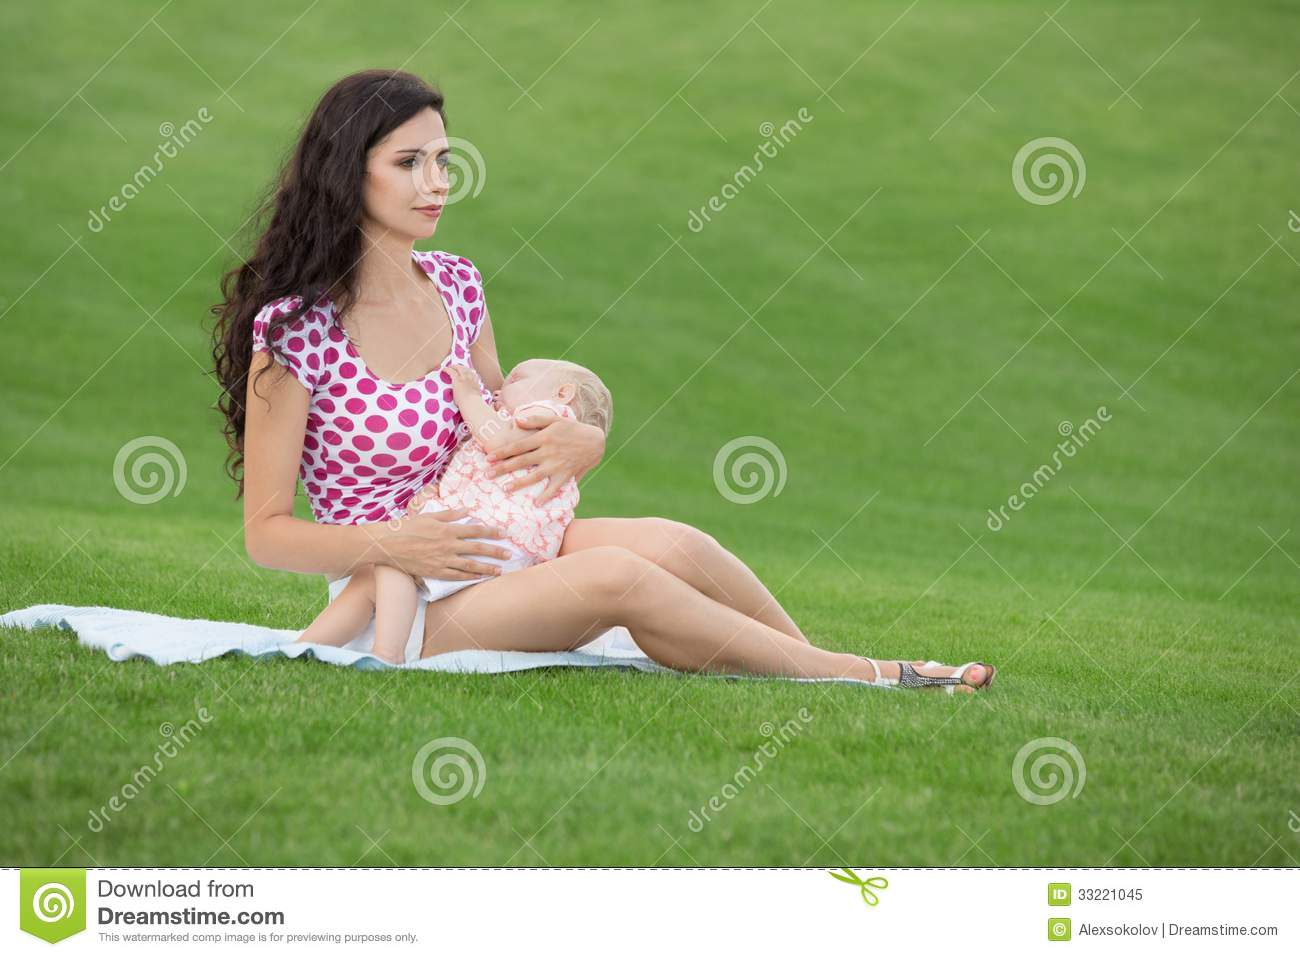 Dating a young woman with a baby